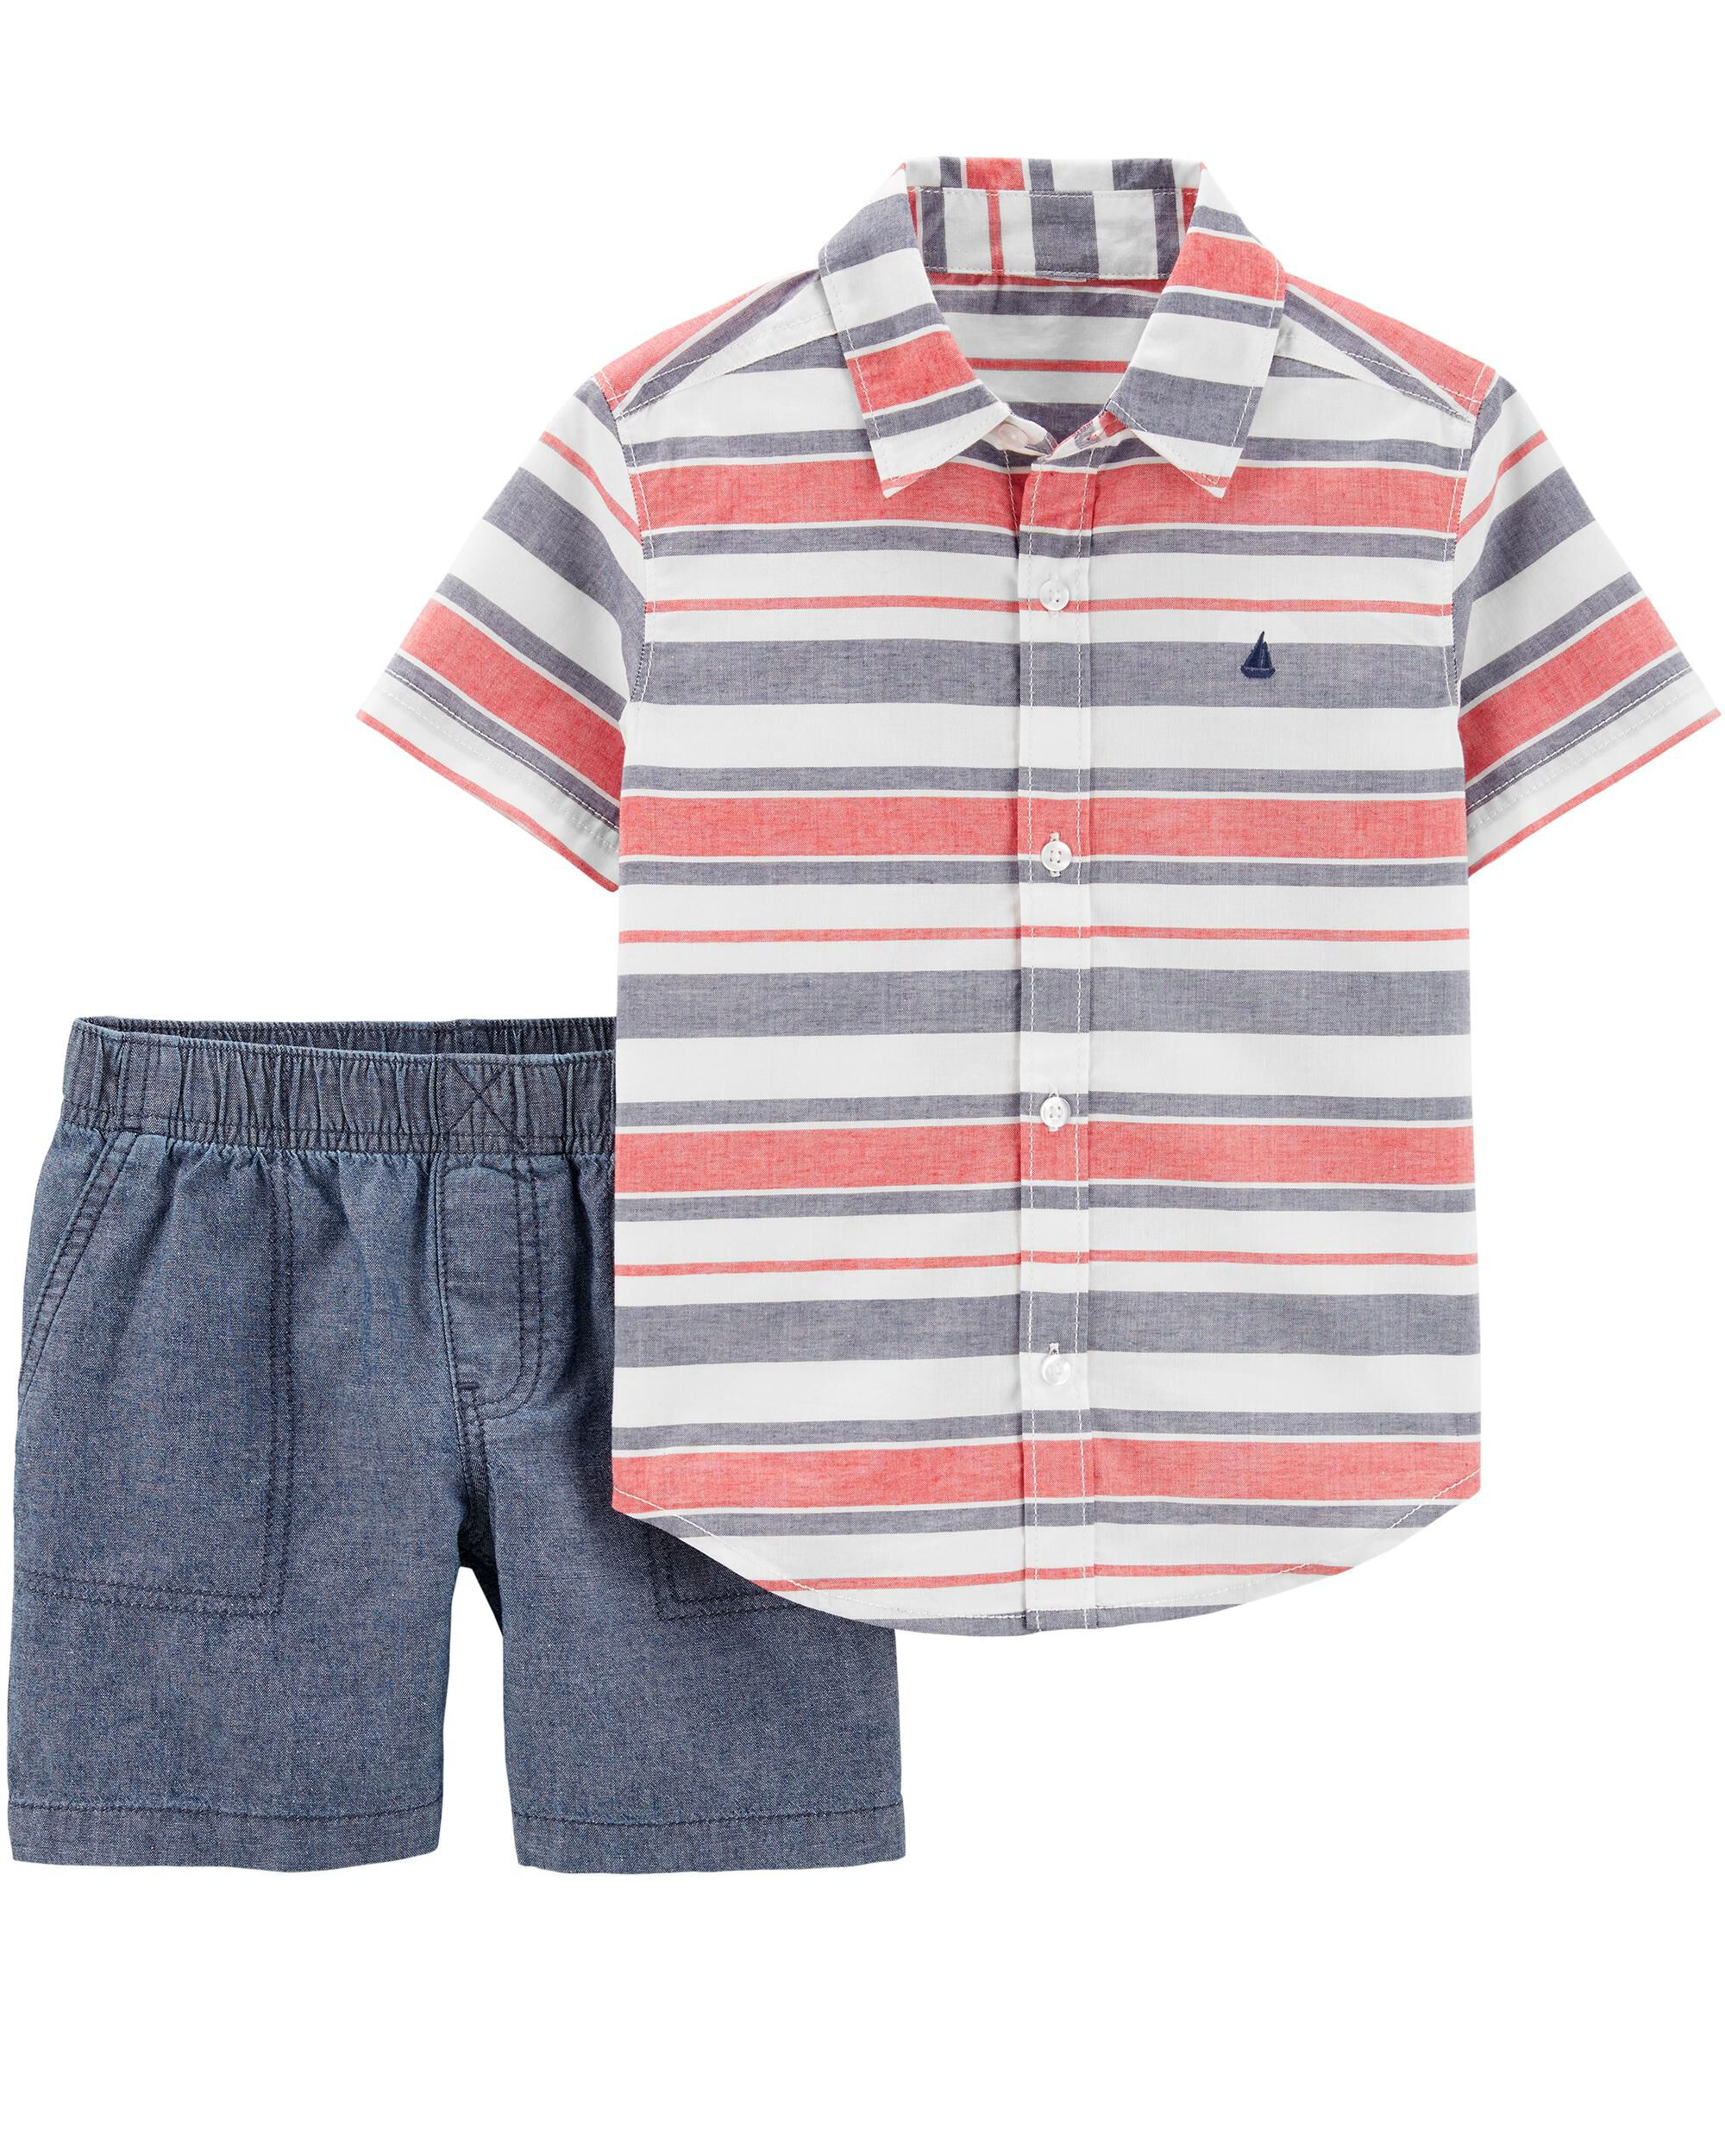 9a16ef7eb 2-Piece Striped Button-Front Top & Chambray Short Set. Loading zoom